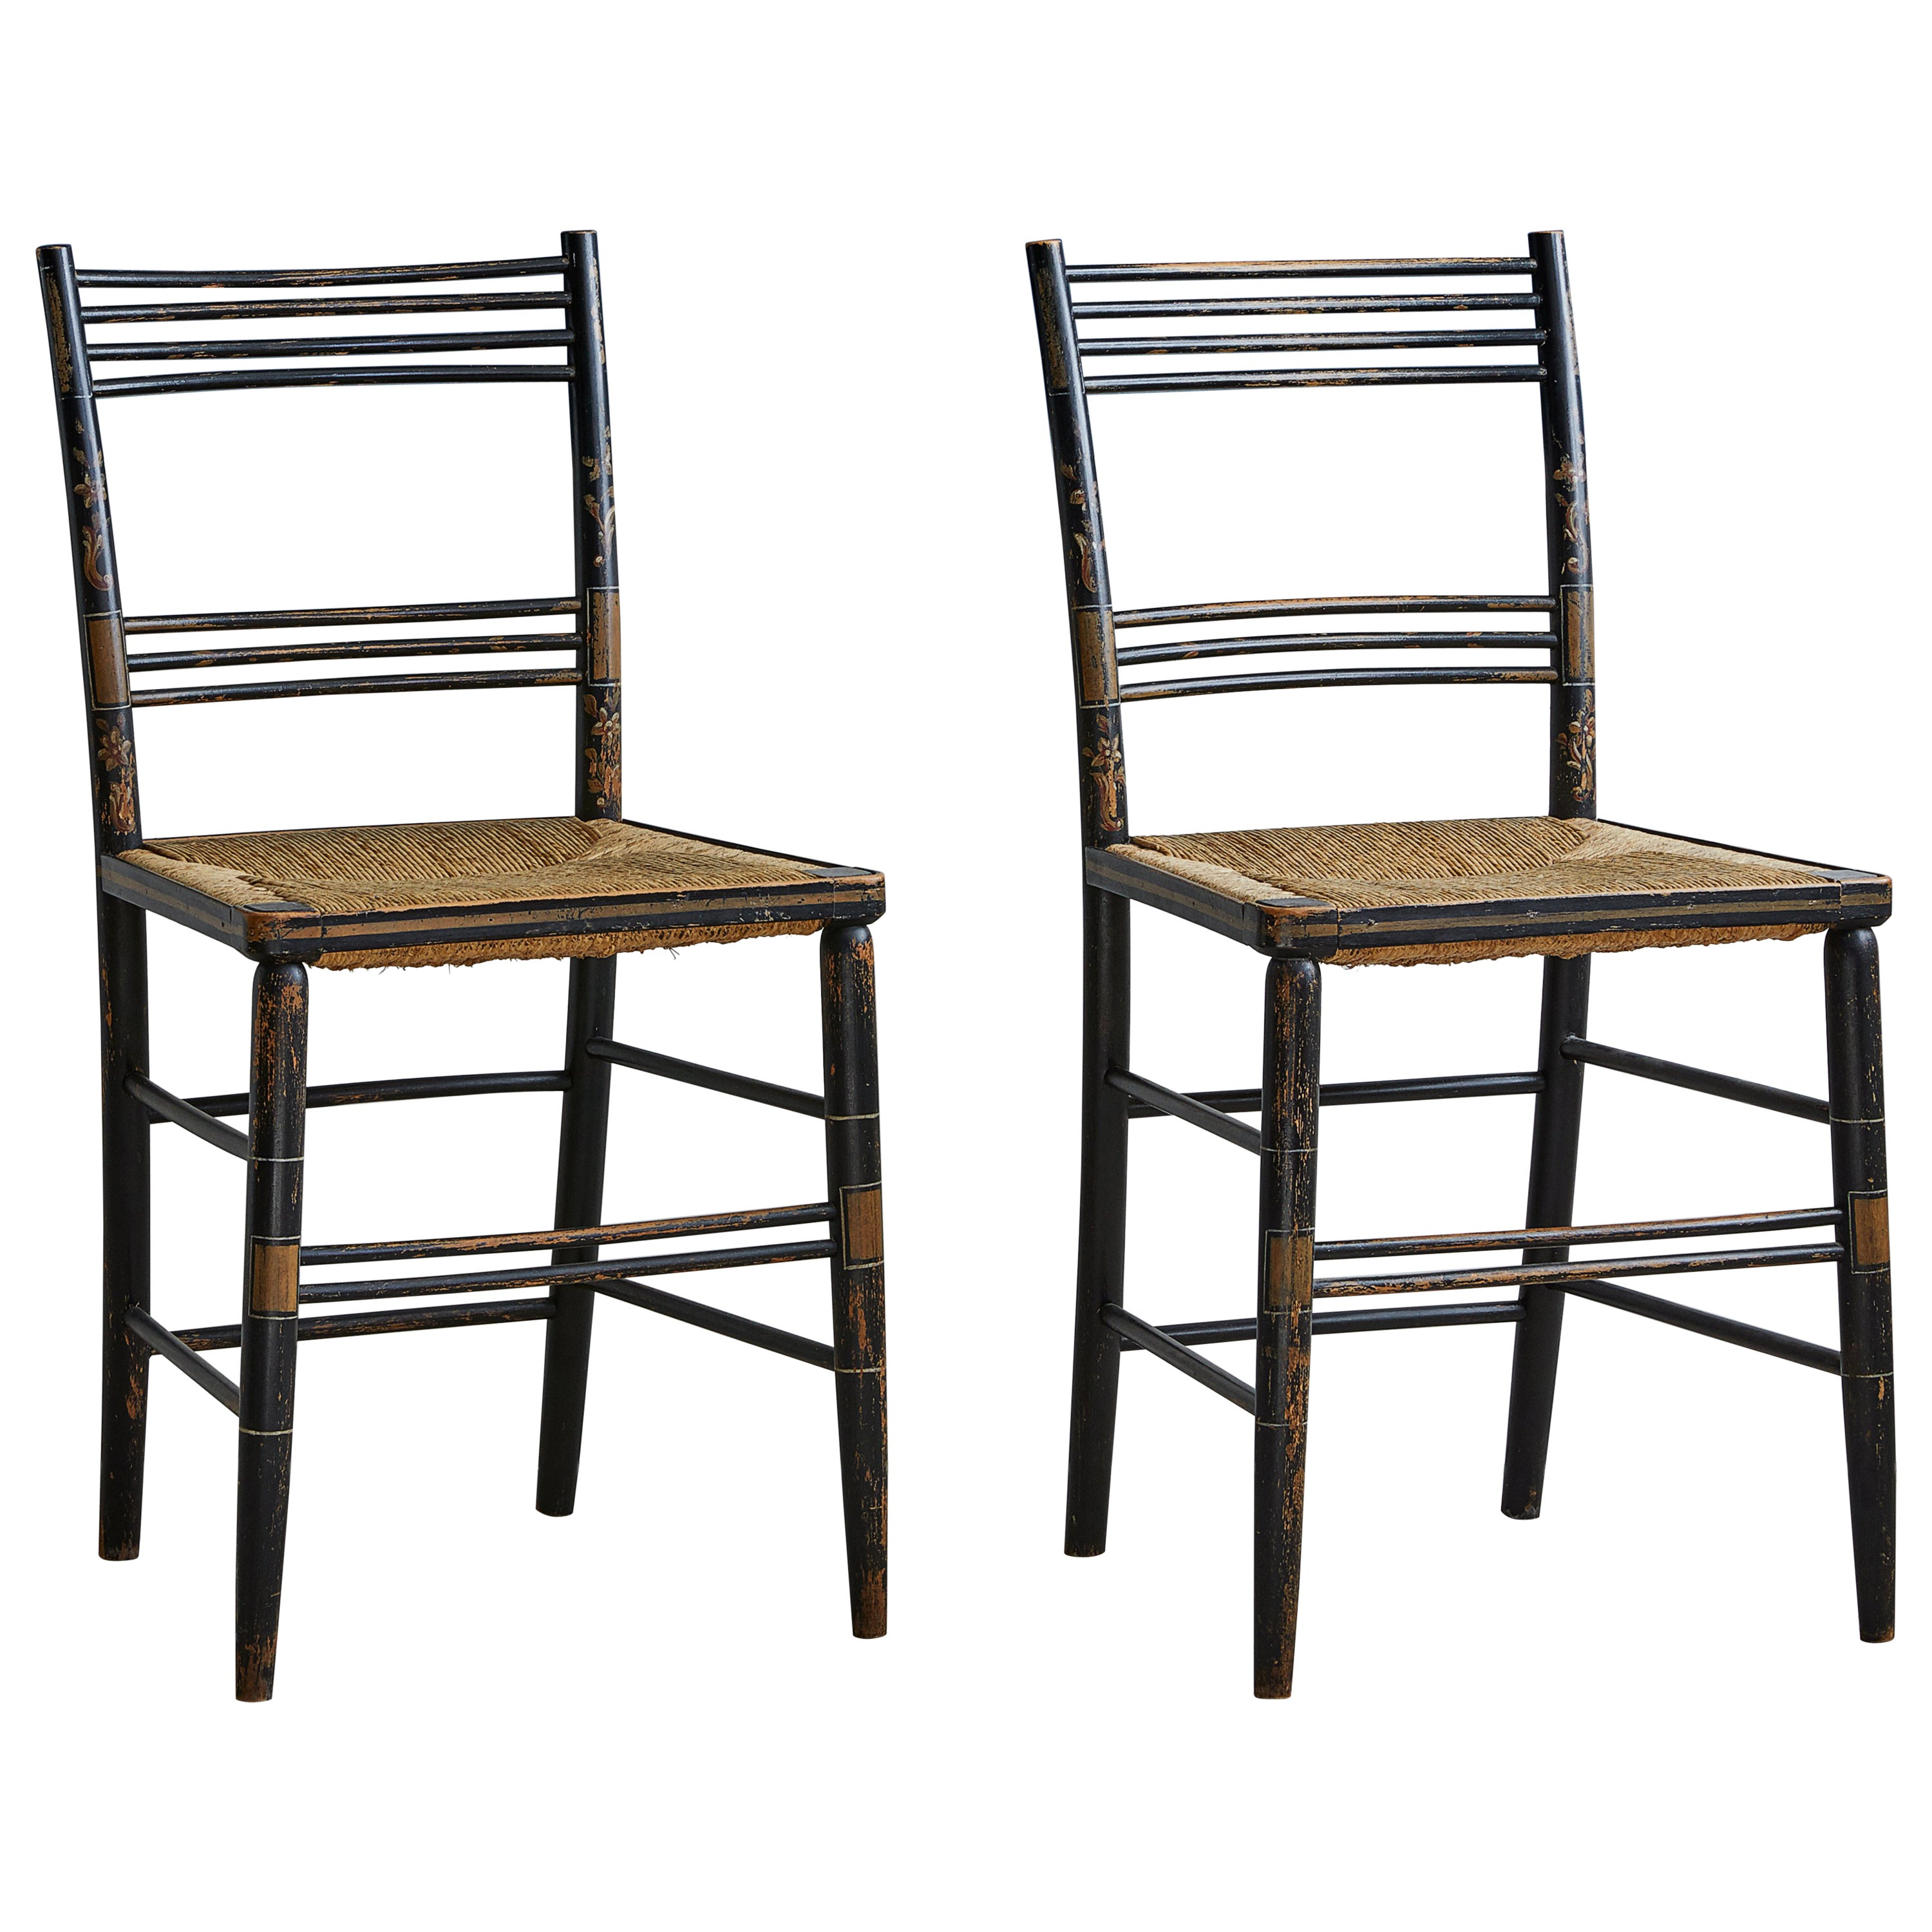 Pair Of Painted Wooden Chairs With Woven Seat At 1stdibs